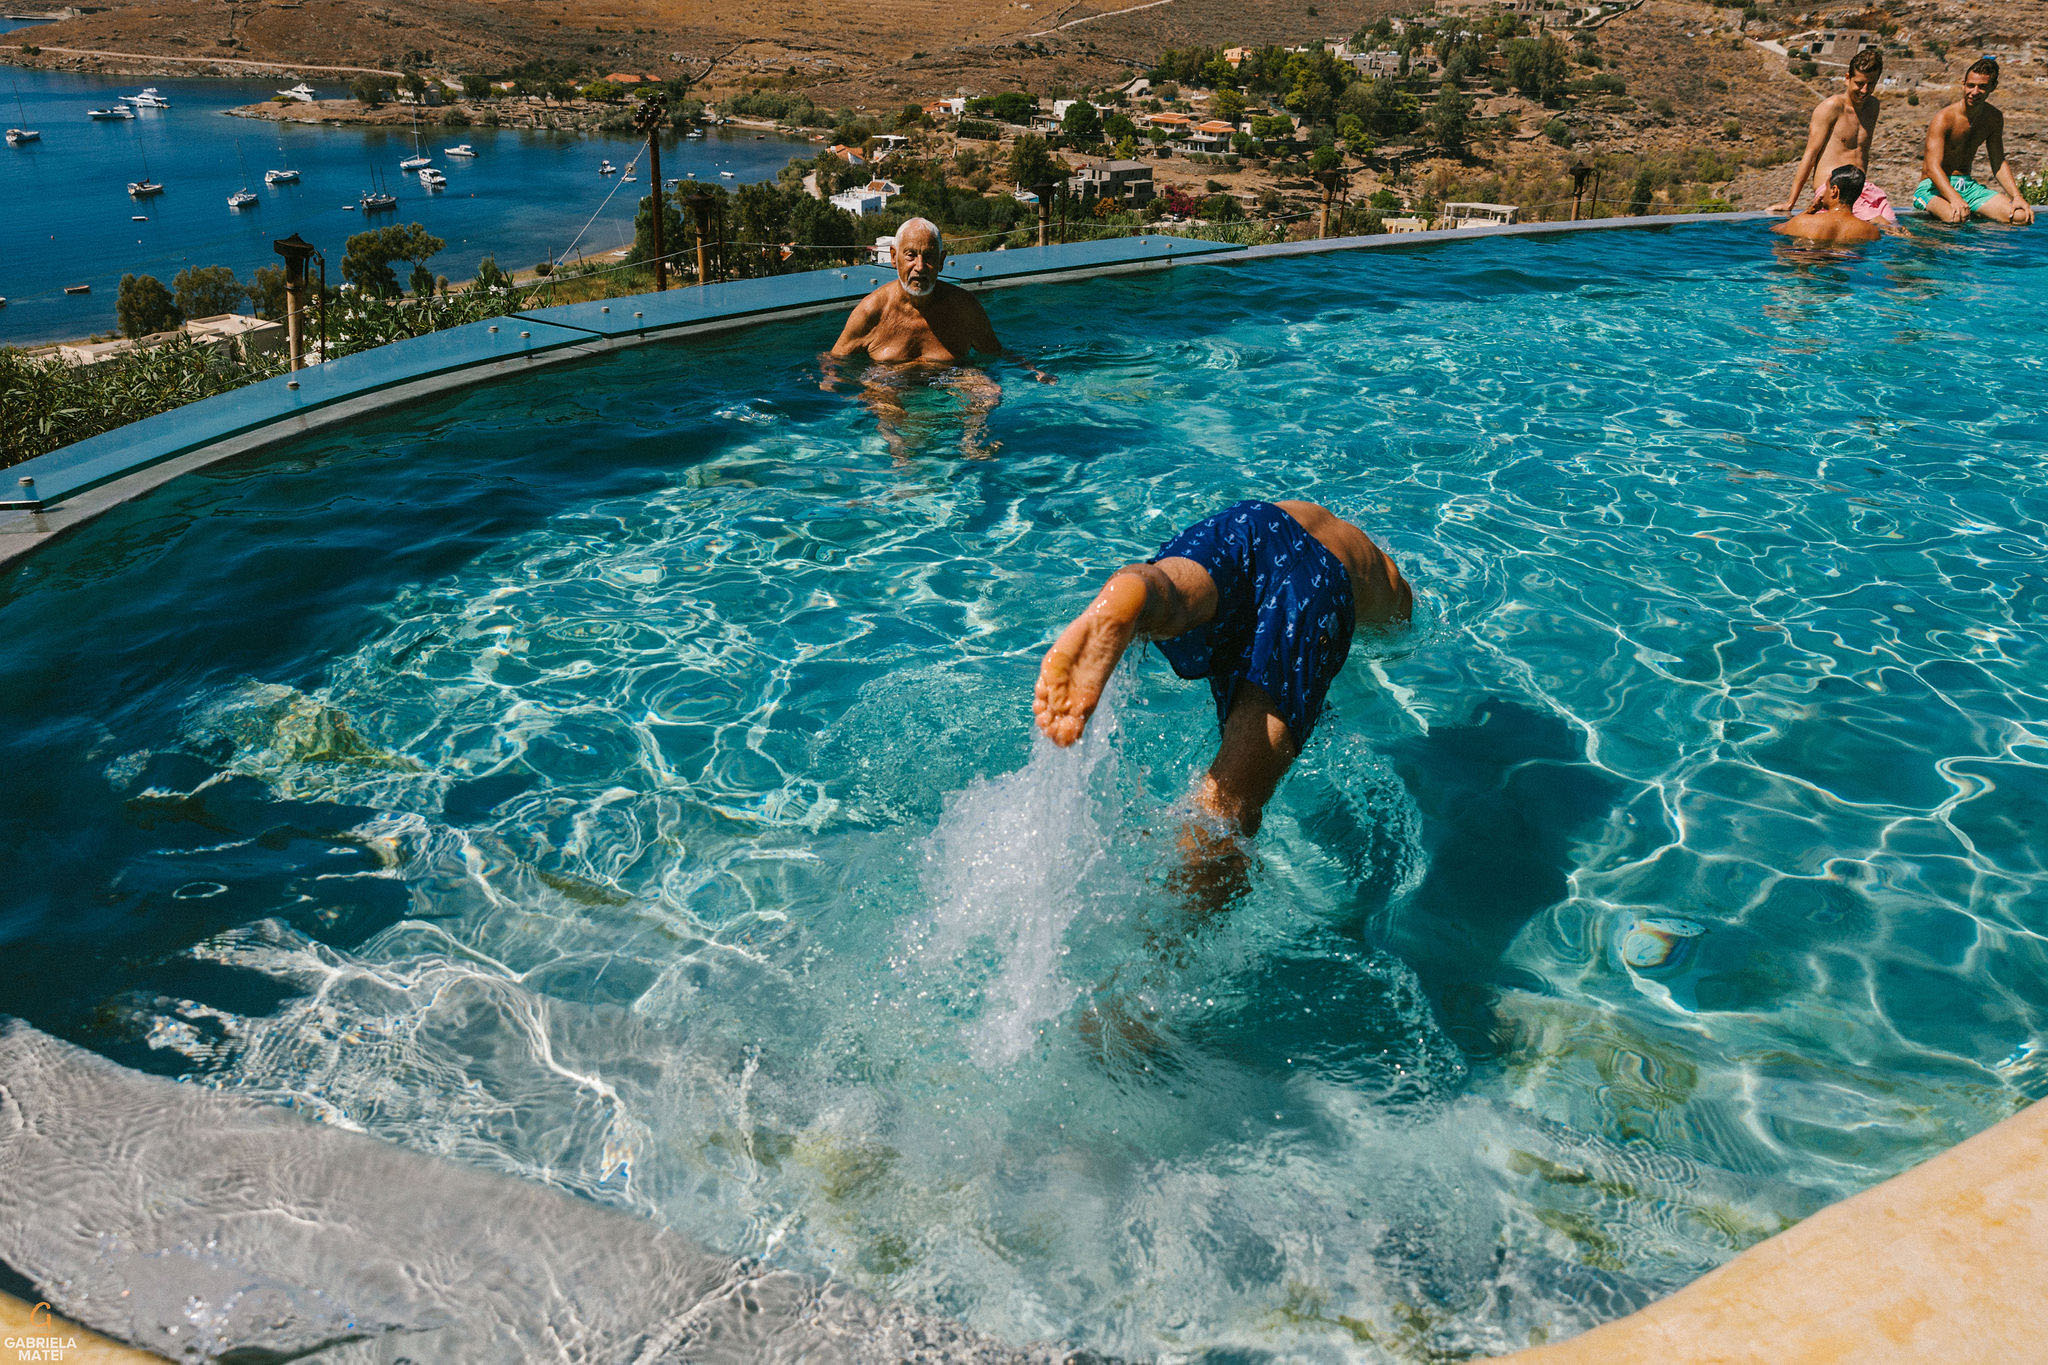 Groom jumping into the pool during bridal prep at Aigis Suites on Kea island